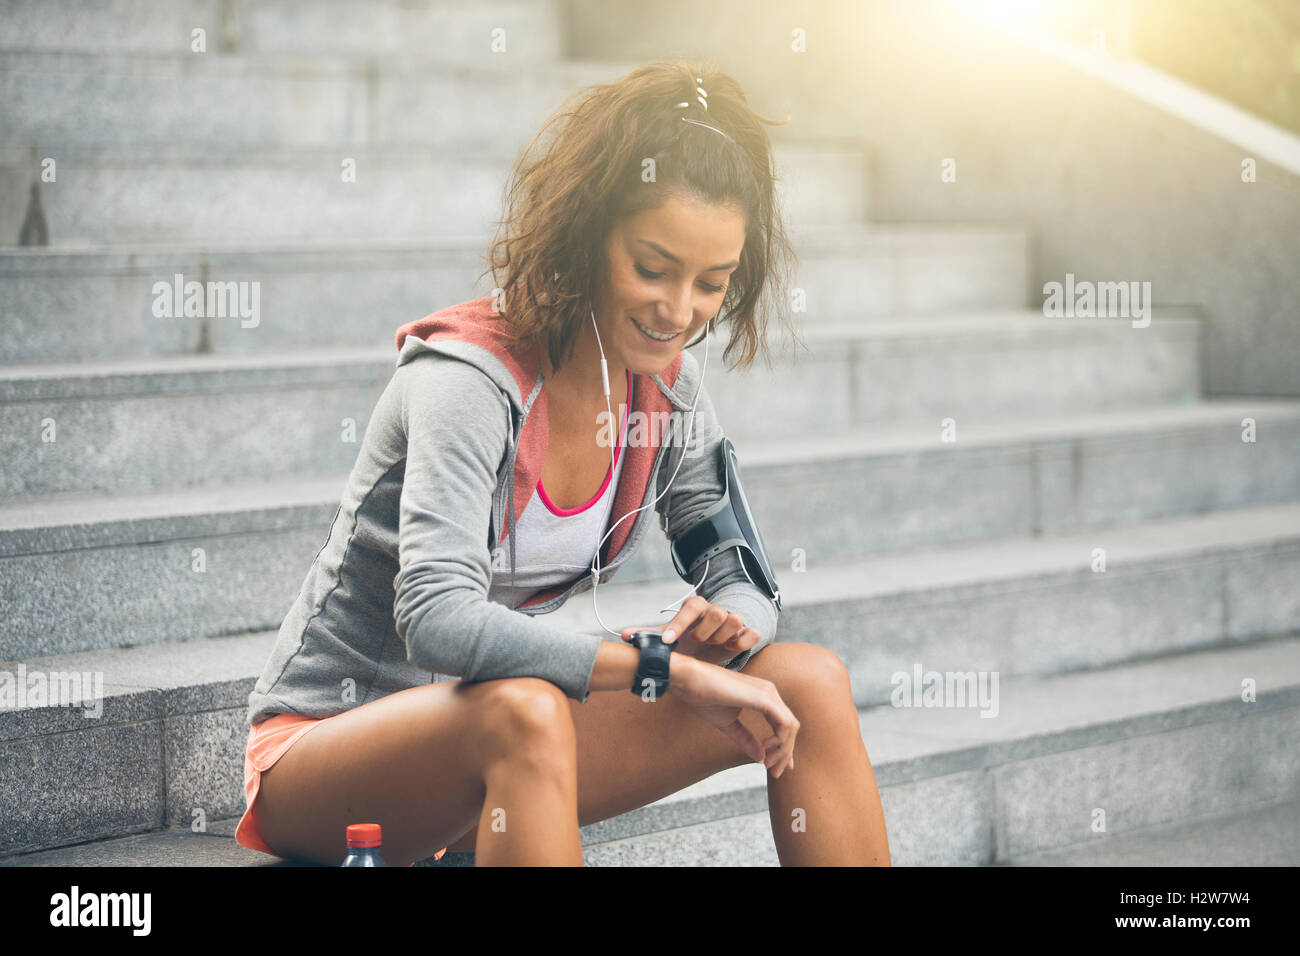 Female runner looking at her sport watch. Measuring heart rate - Stock Image